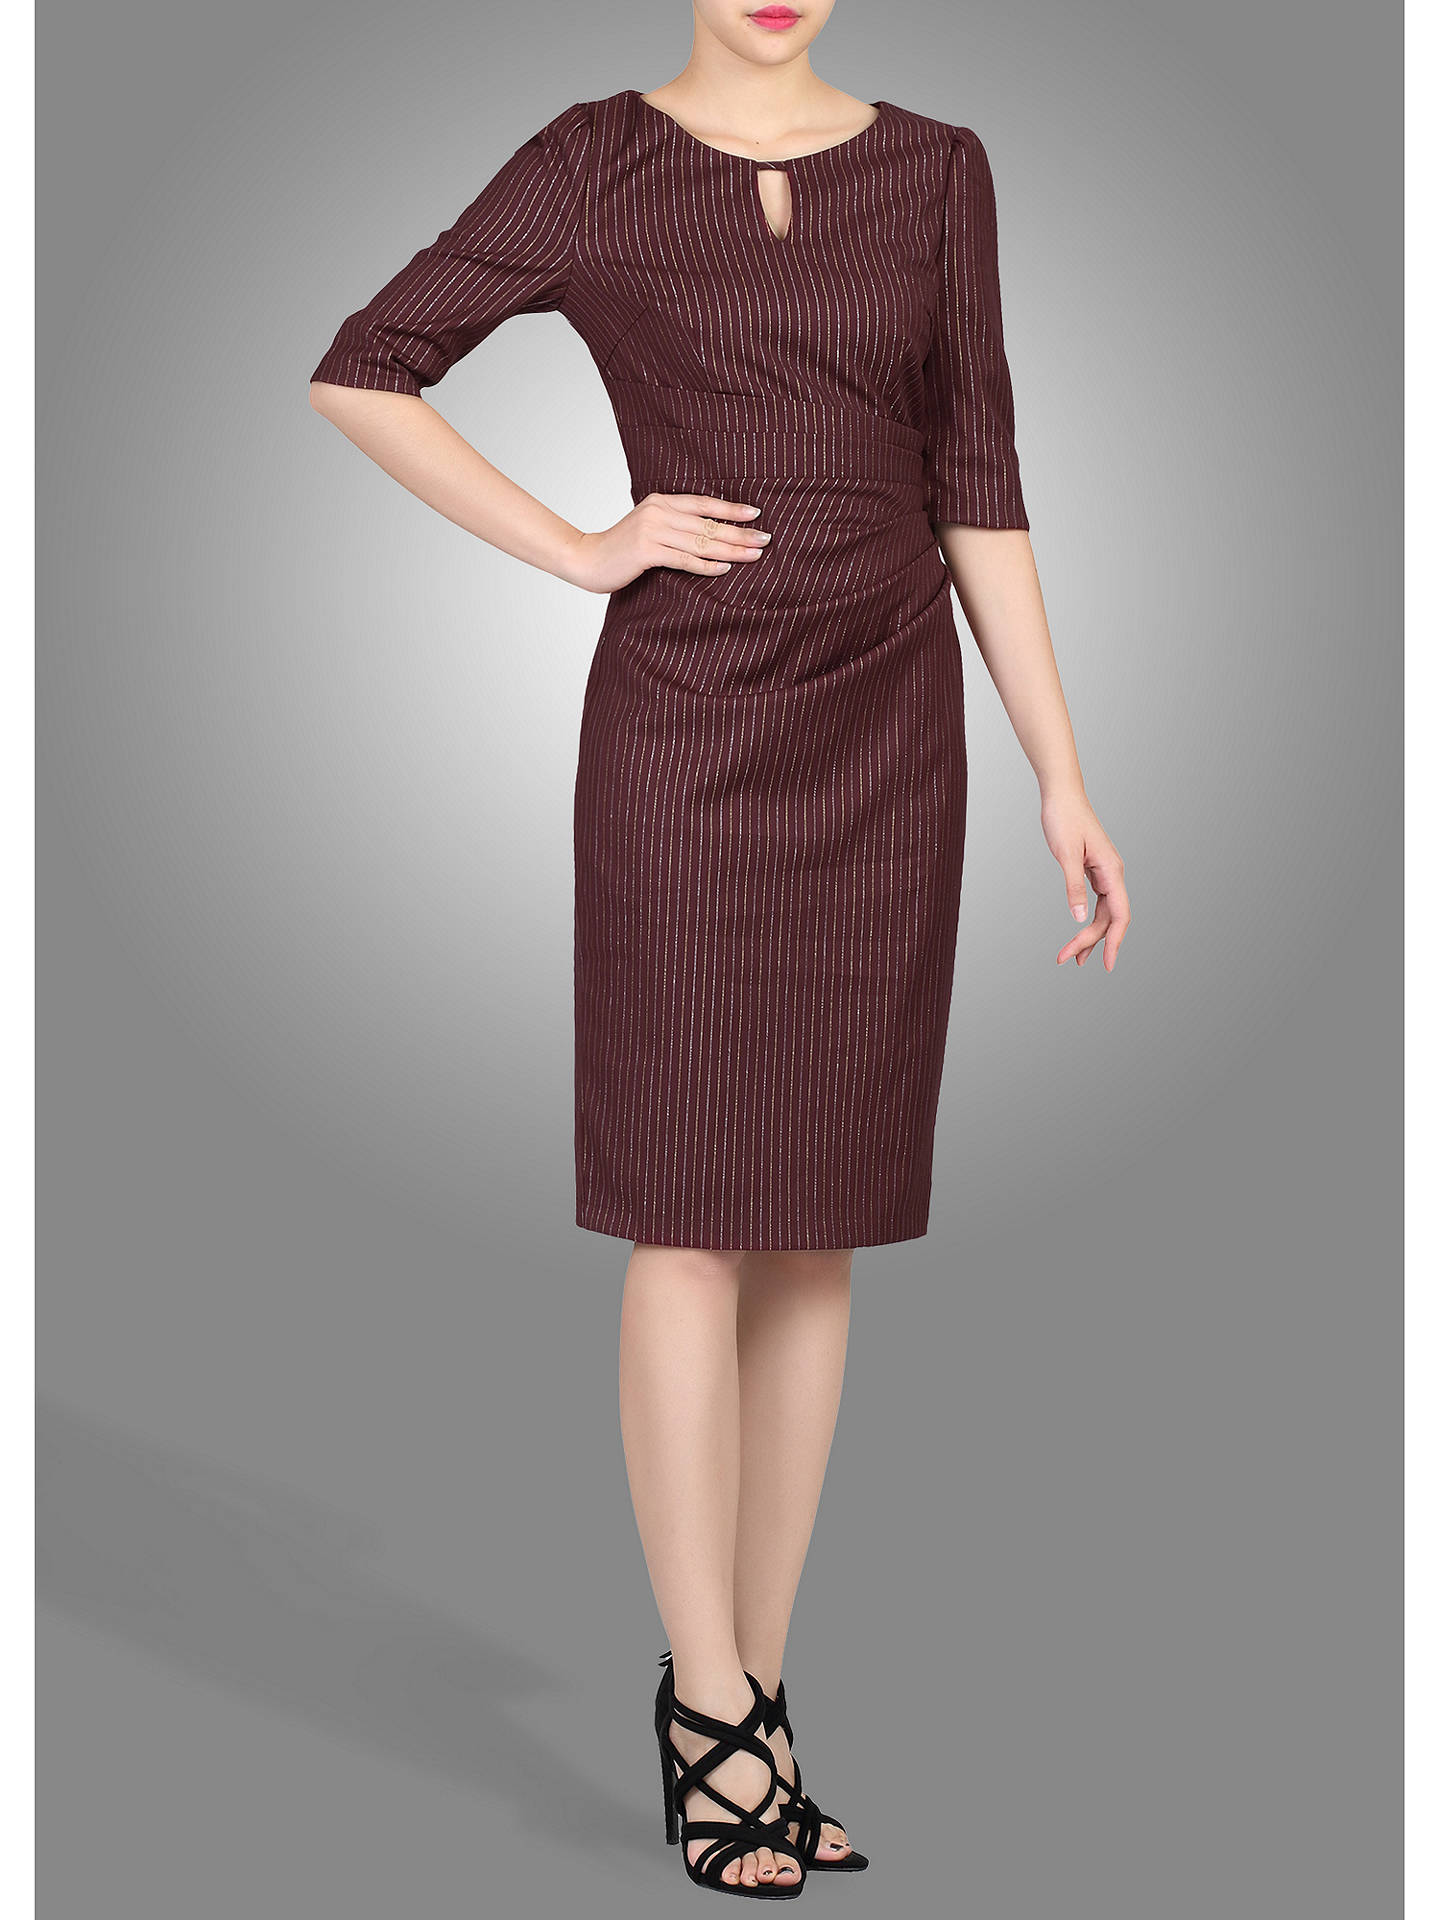 BuyJolie Moi Floral Half Sleeve Striped Shift Dress, Burgundy, 20 Online at johnlewis.com